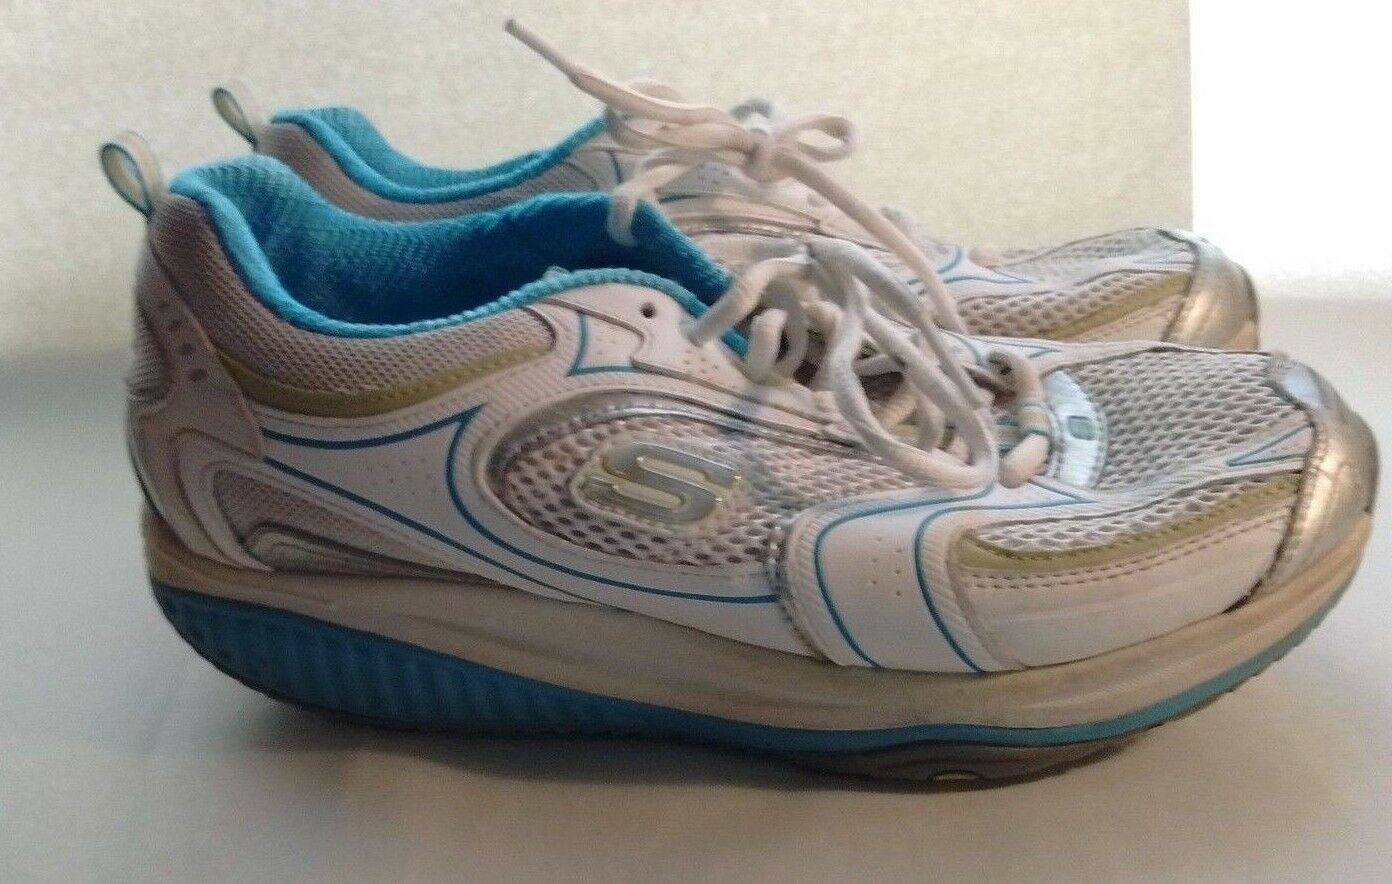 Skechers Shape Ups White Leather bluee Accent Walking Women's shoes 8.5M 38.5